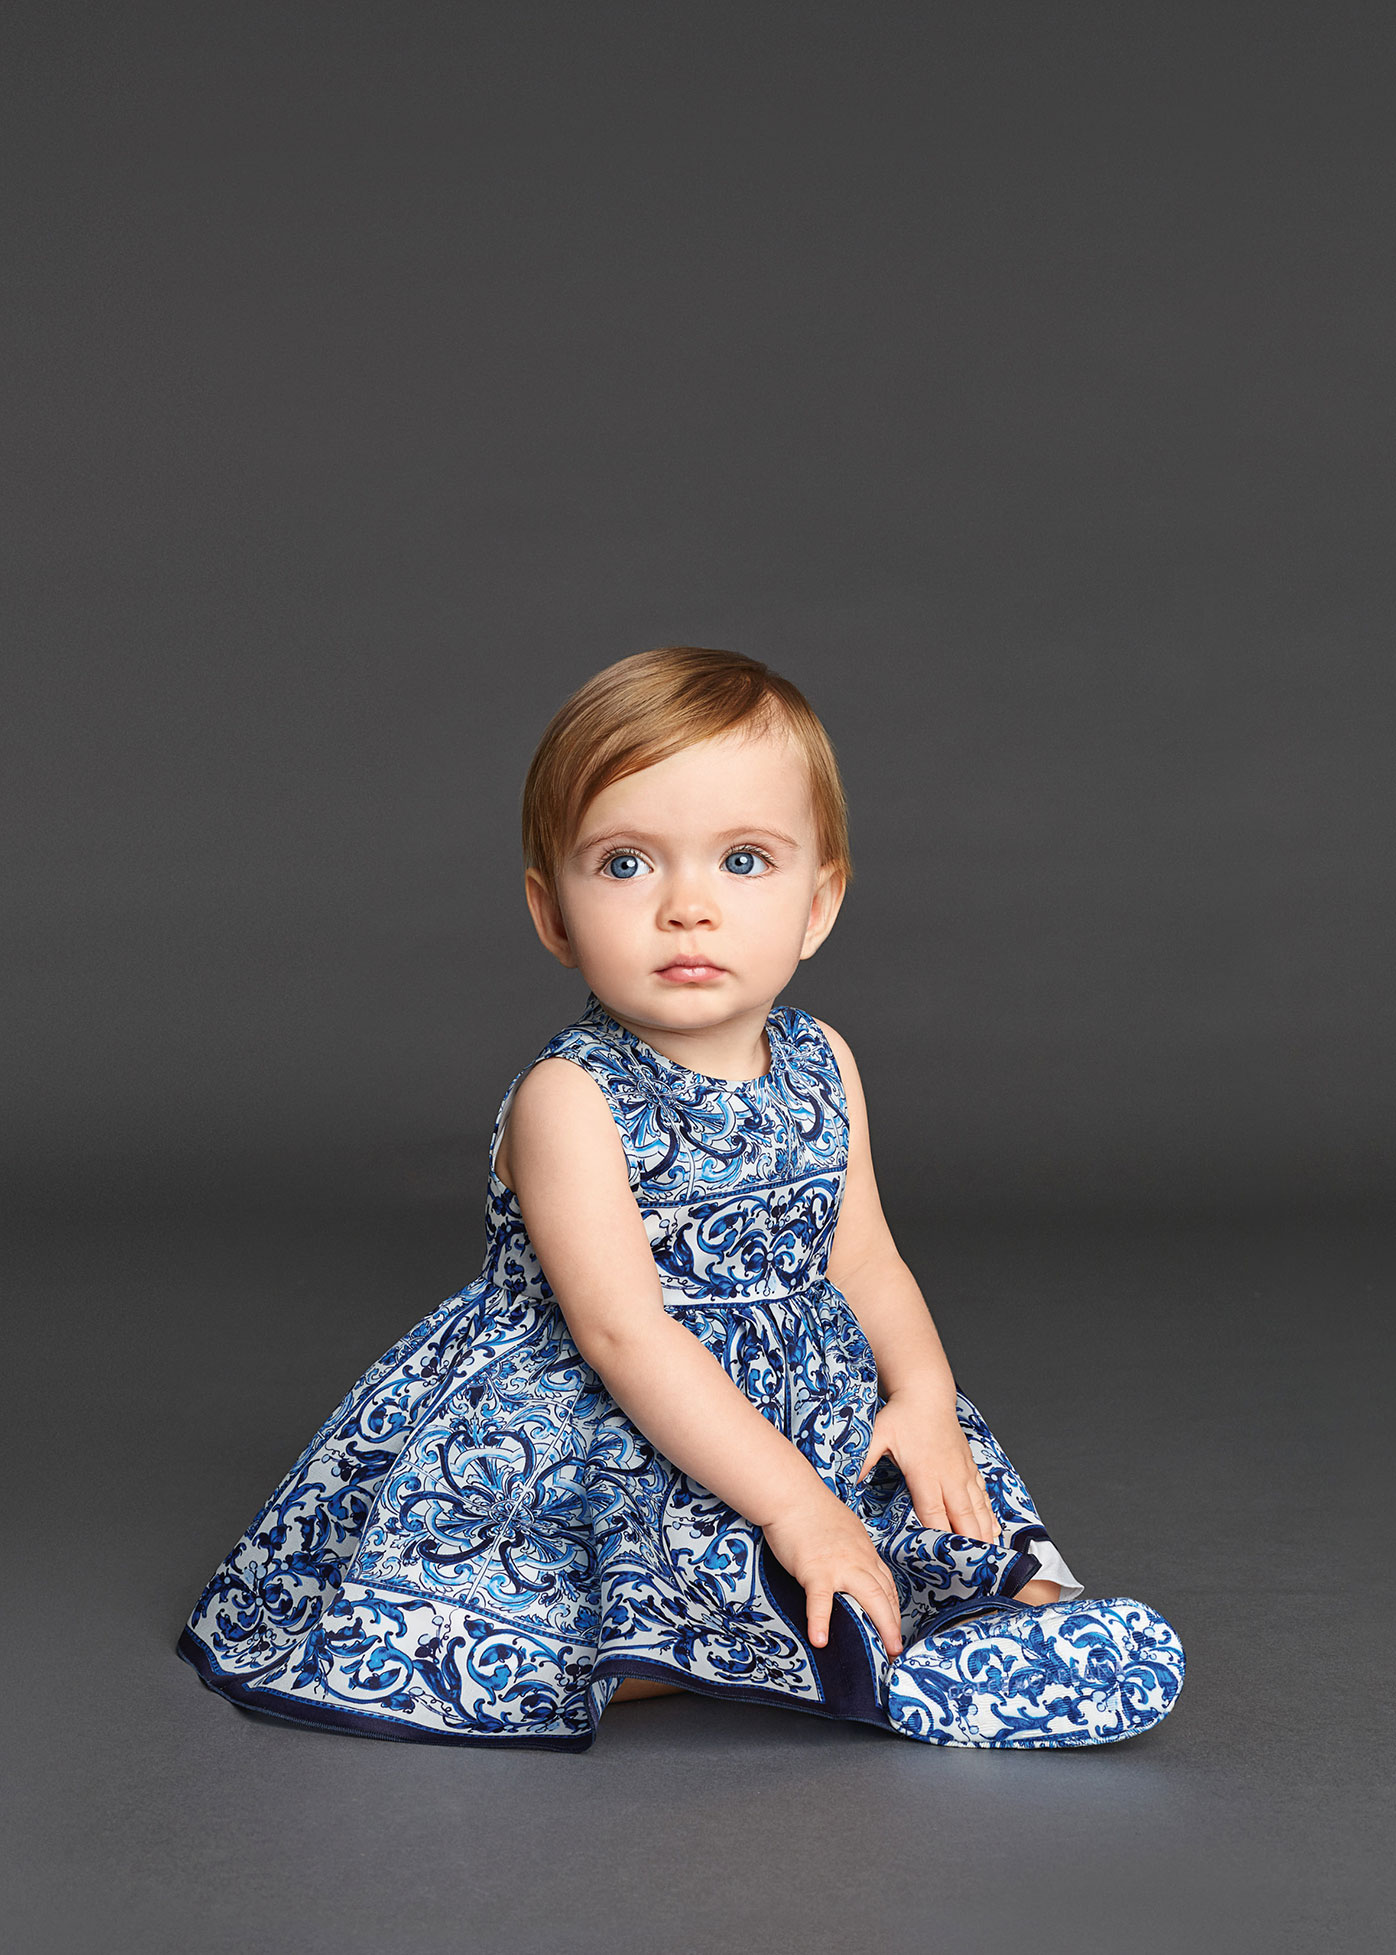 Dresses Baby Clothes at Macy's come in a variety of styles and sizes. Shop Dresses Baby Clothes at Macy's and find the latest styles for your little one today. Free Shipping Available.